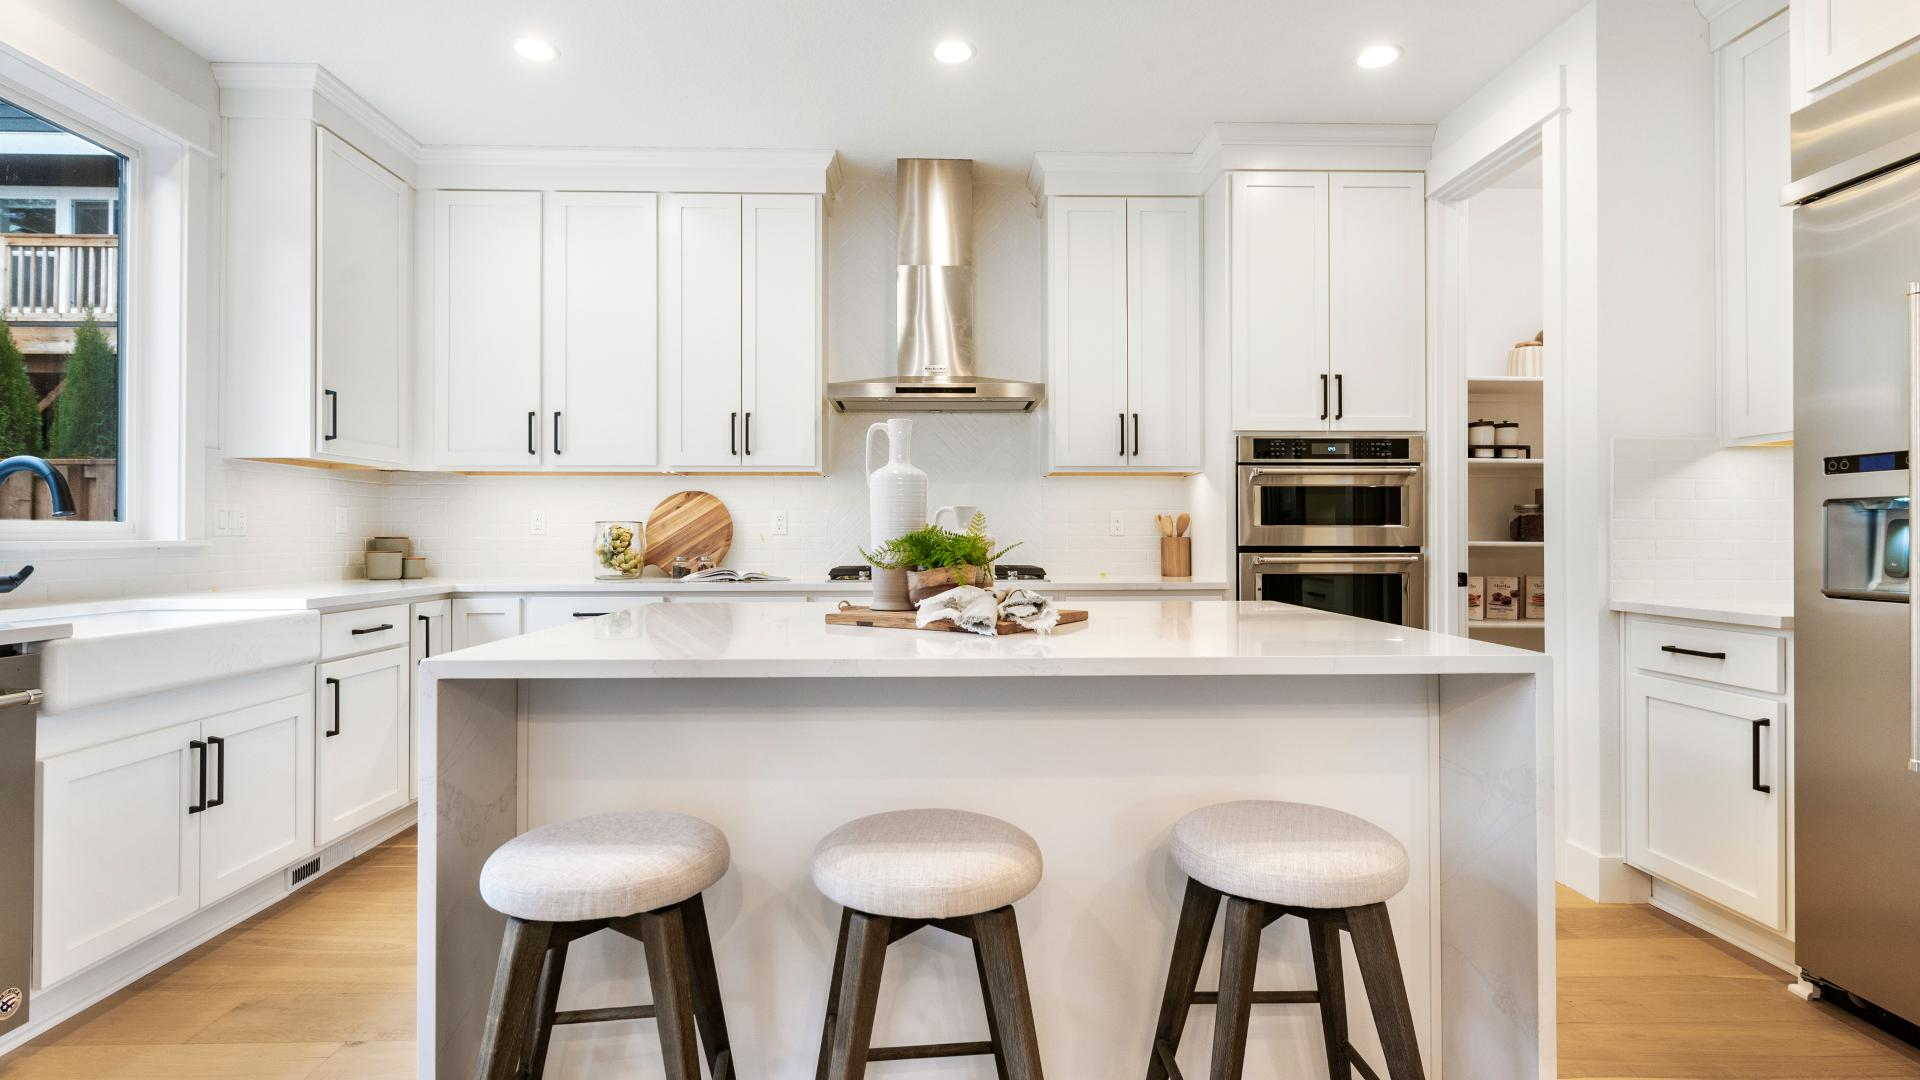 Chef's kitchen in the Nehalem with Basement home